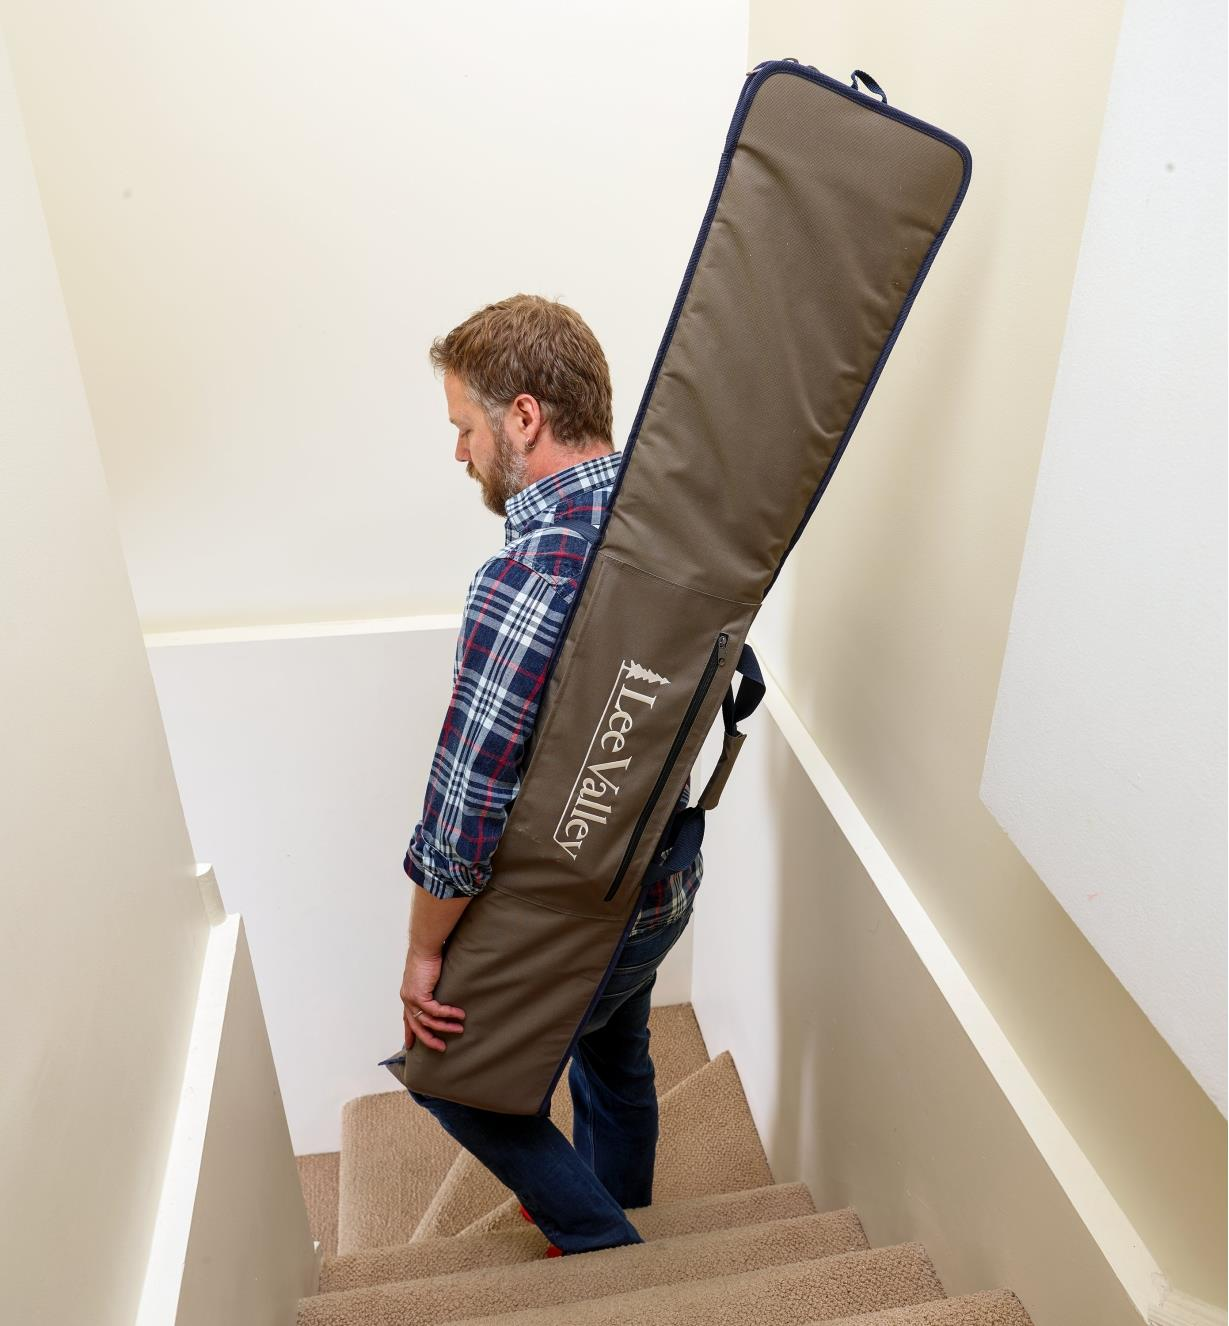 Carrying the small guide rail bag down stairs with the shoulder strap